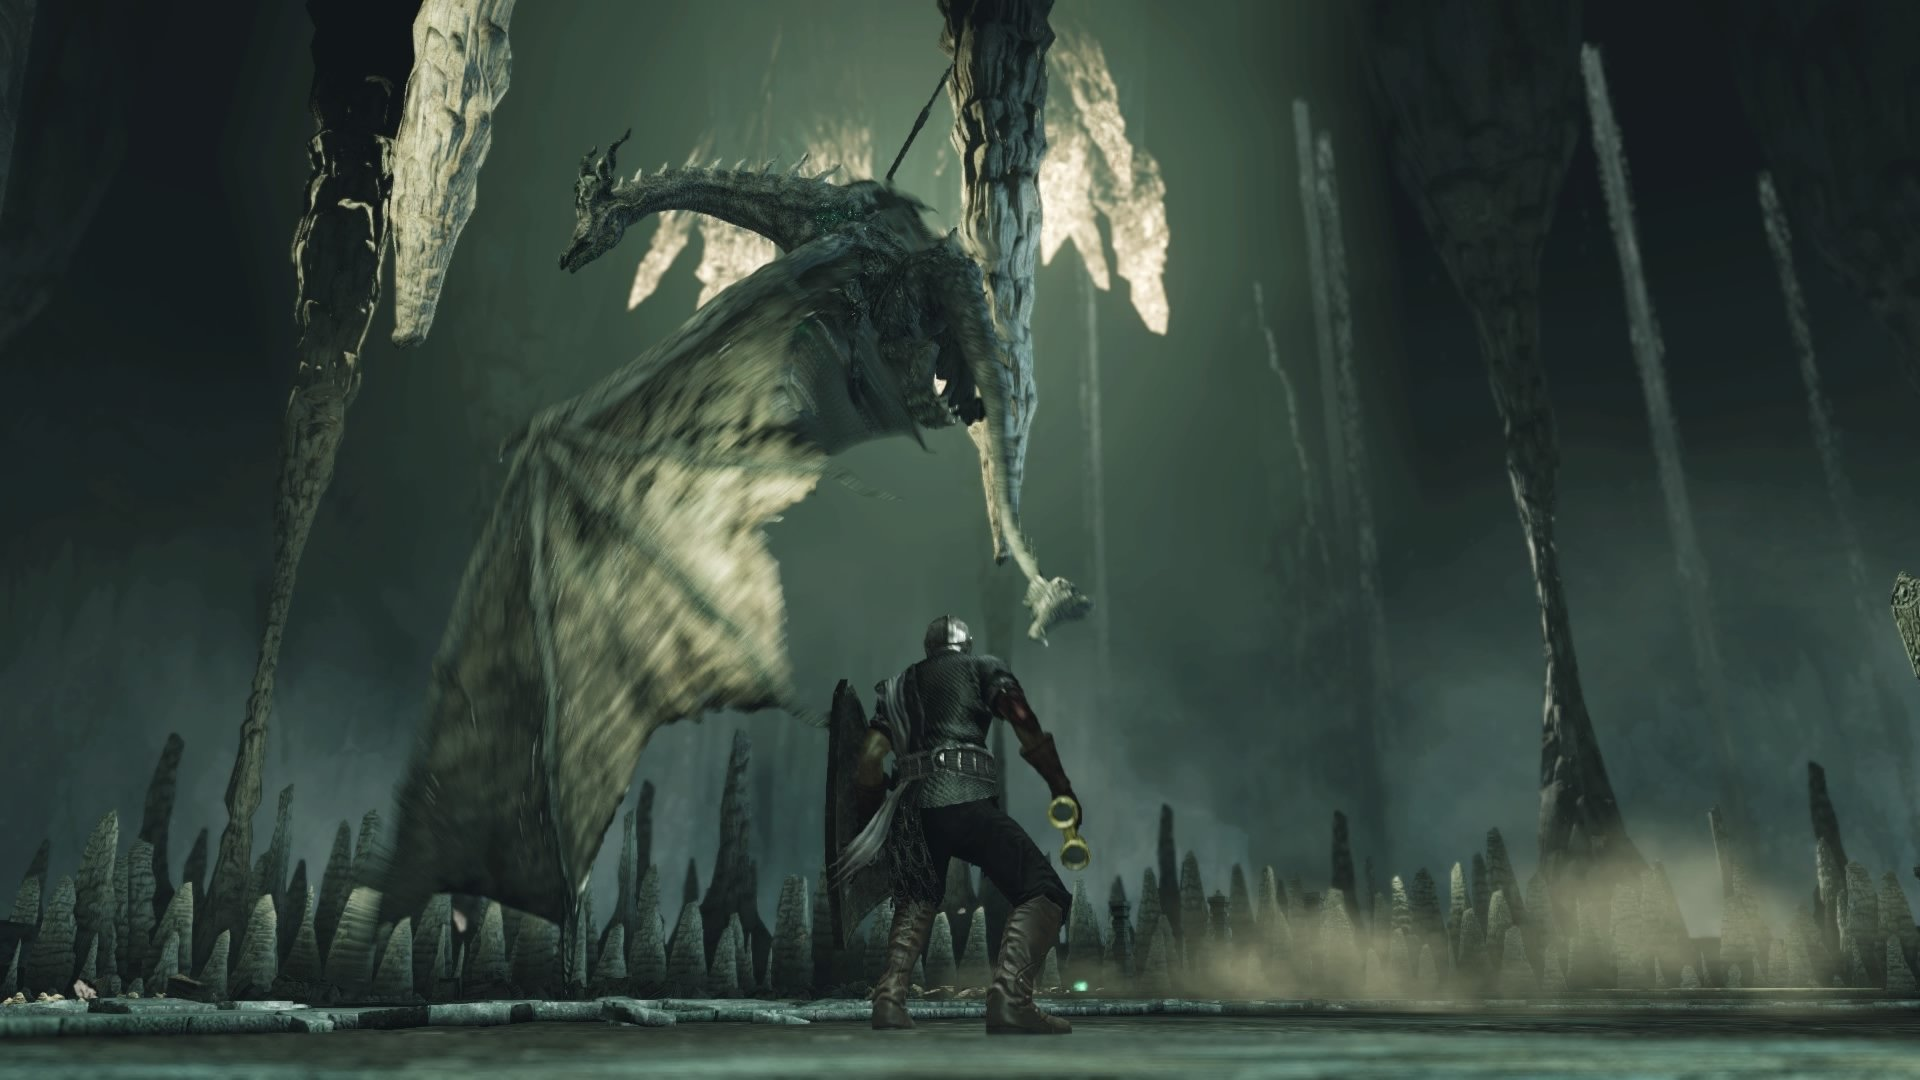 Dark Souls 2 Wiki: Sinh, The Slumbering Dragon